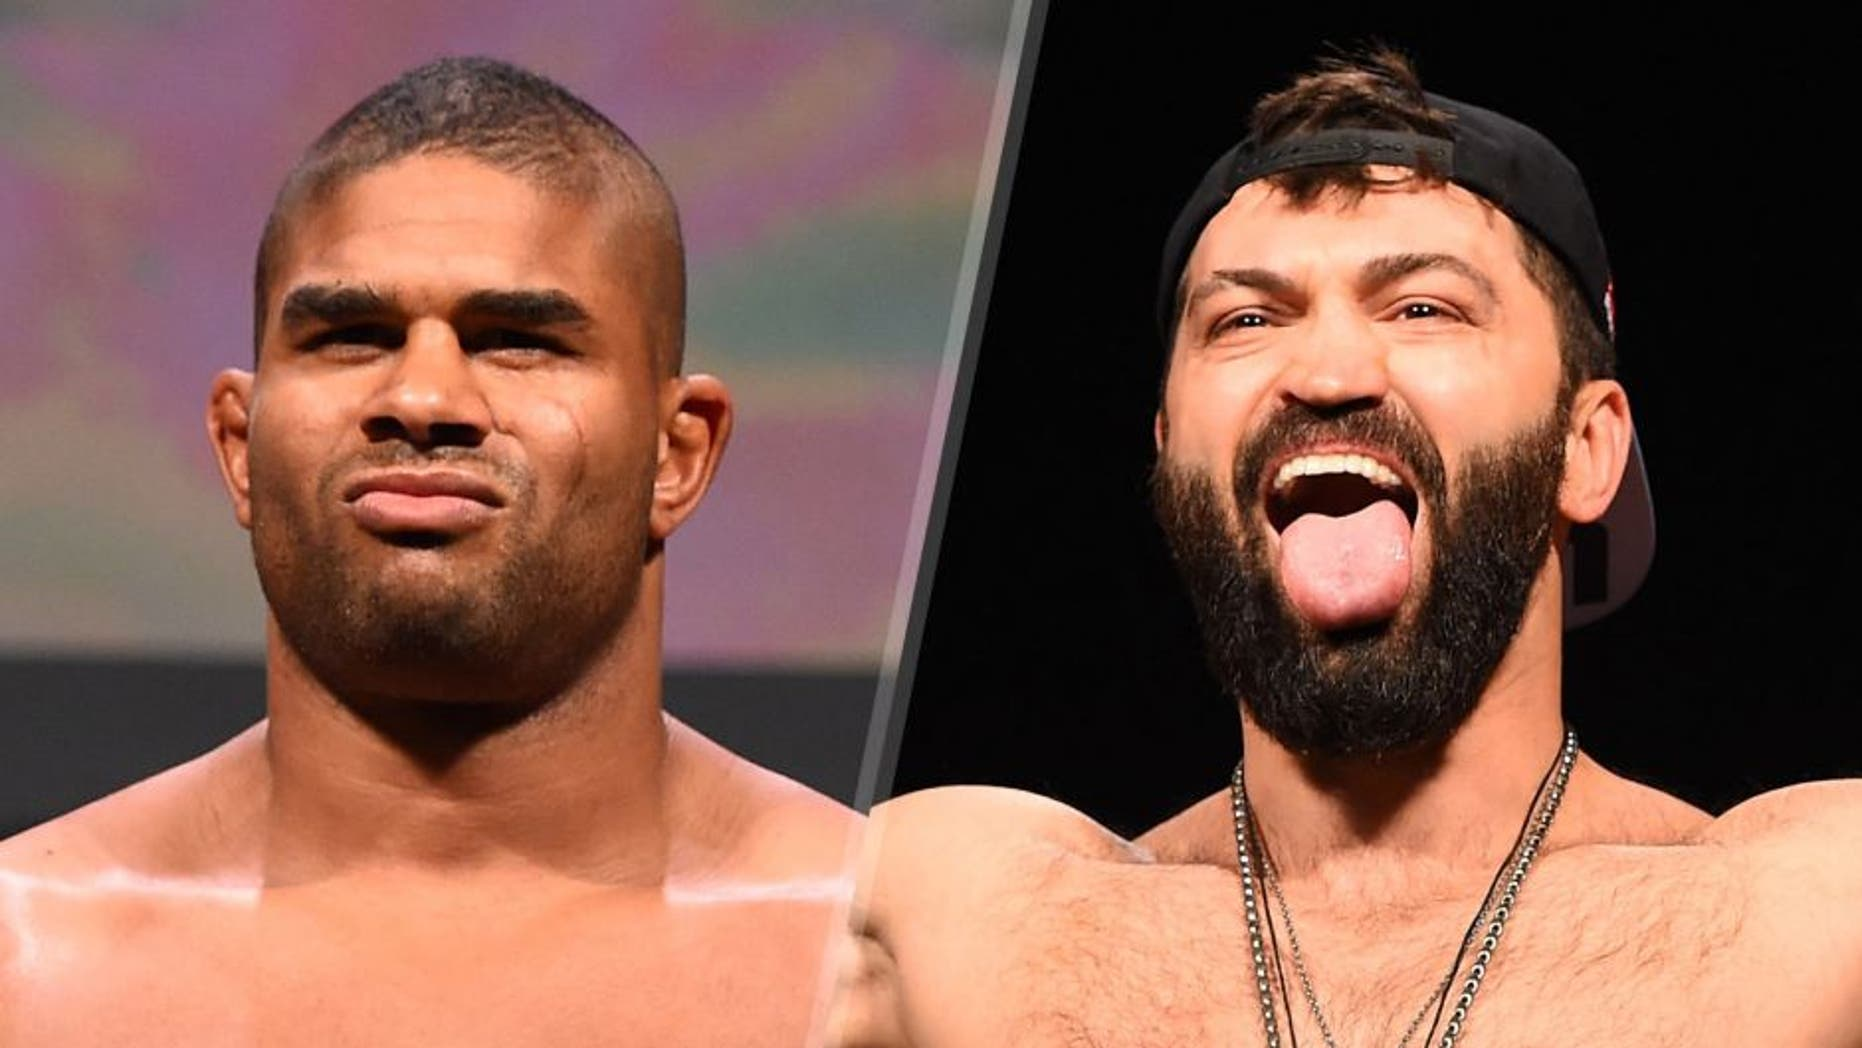 ORLANDO, FL - DECEMBER 18: Alistair Overeem of the Netherlands weighs in during the UFC weigh-in at the Orange County Convention Center on December 18, 2015 in Orlando, Florida. (Photo by Josh Hedges/Zuffa LLC/Zuffa LLC via Getty Images) LAS VEGAS, NV - JANUARY 01: Andrei Arlovski of Belarus weighs in during the UFC 195 weigh-in at the MGM Grand Conference Center on January 1, 2016 in Las Vegas, Nevada. (Photo by Josh Hedges/Zuffa LLC/Zuffa LLC via Getty Images)